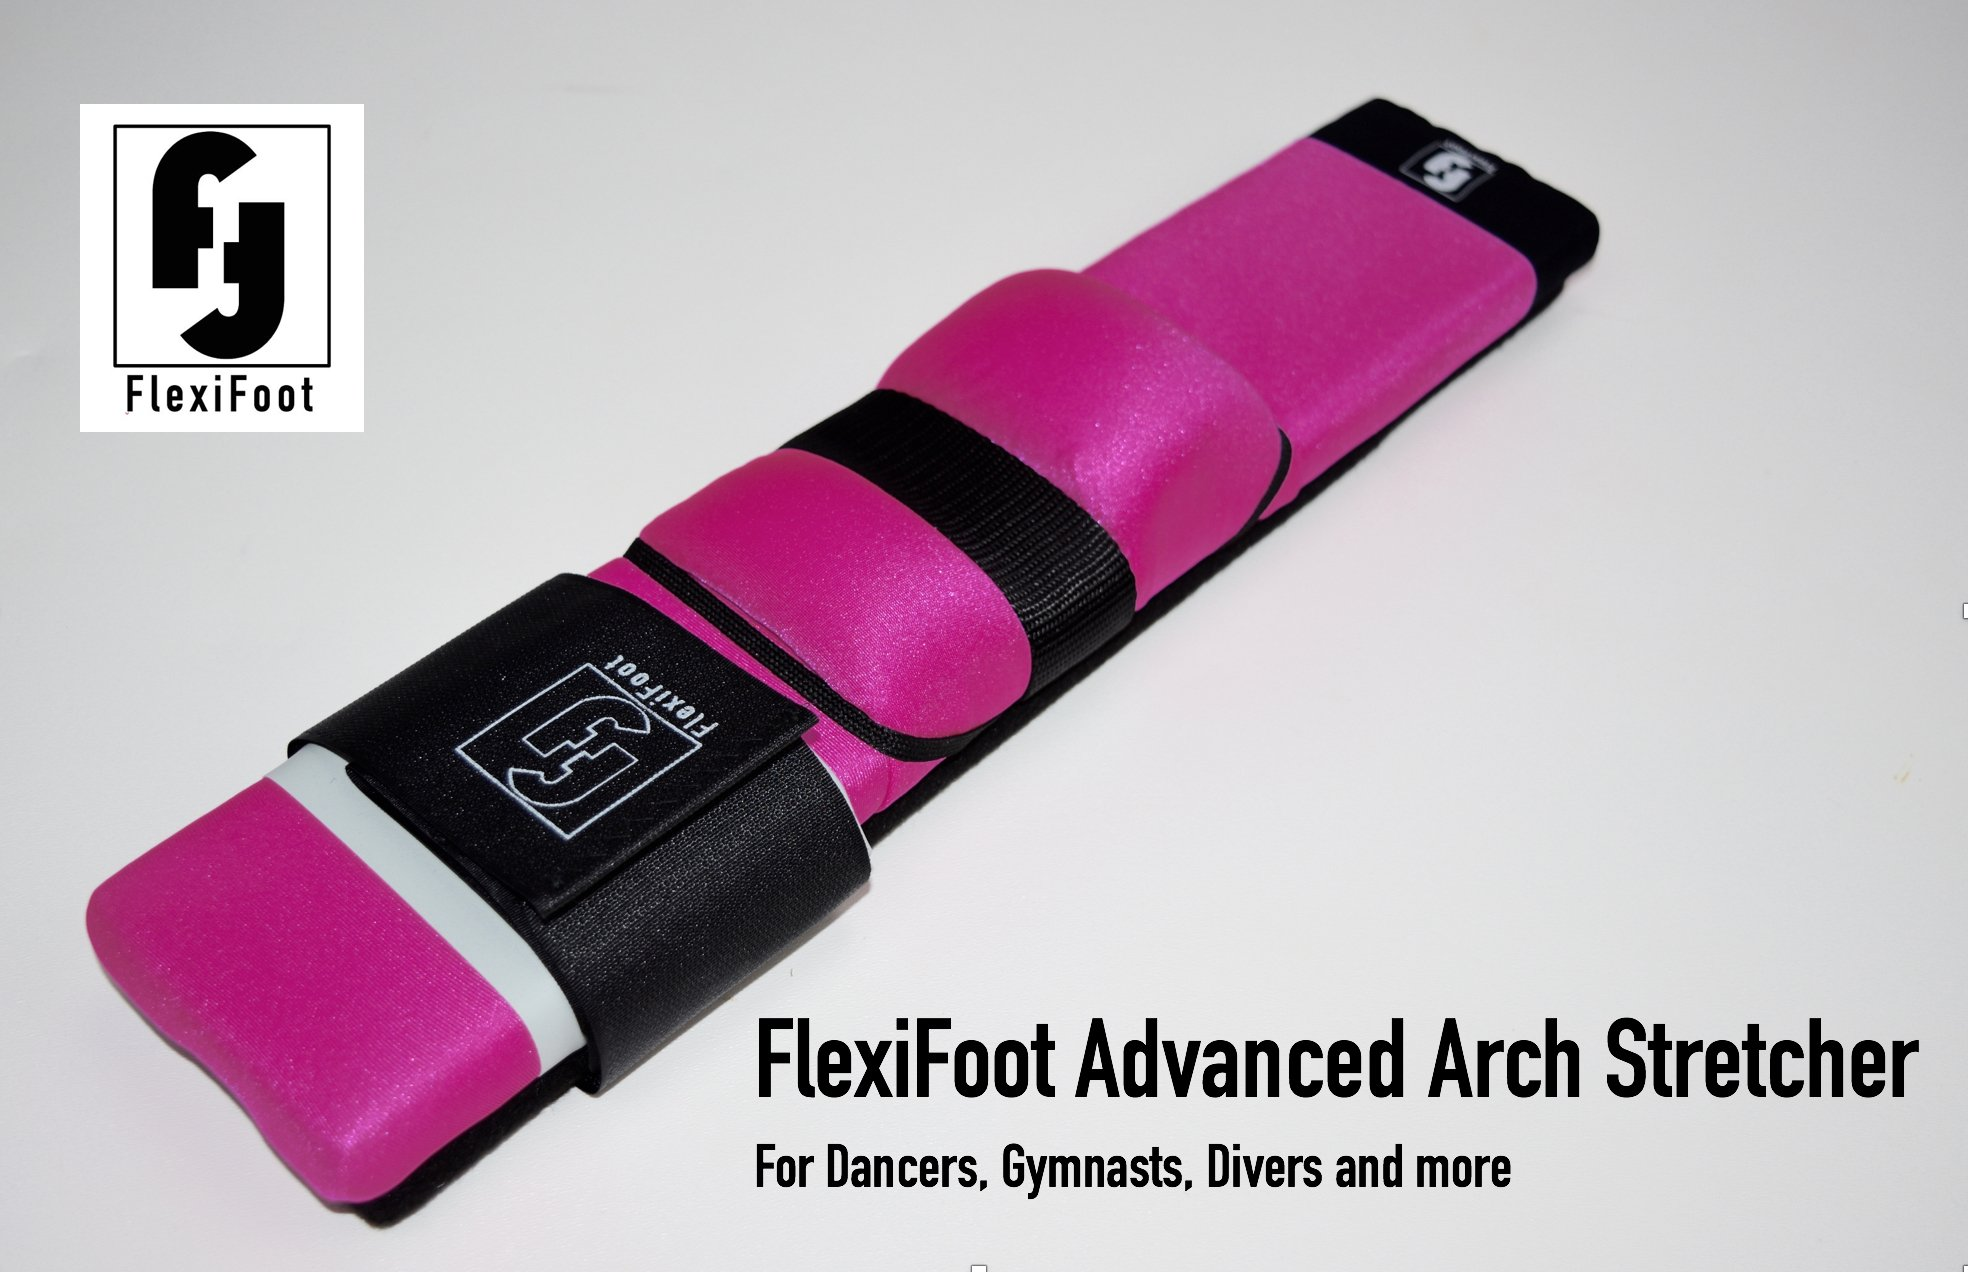 FlexiFoot Advanced Arch Stretcher by FlexiFoot